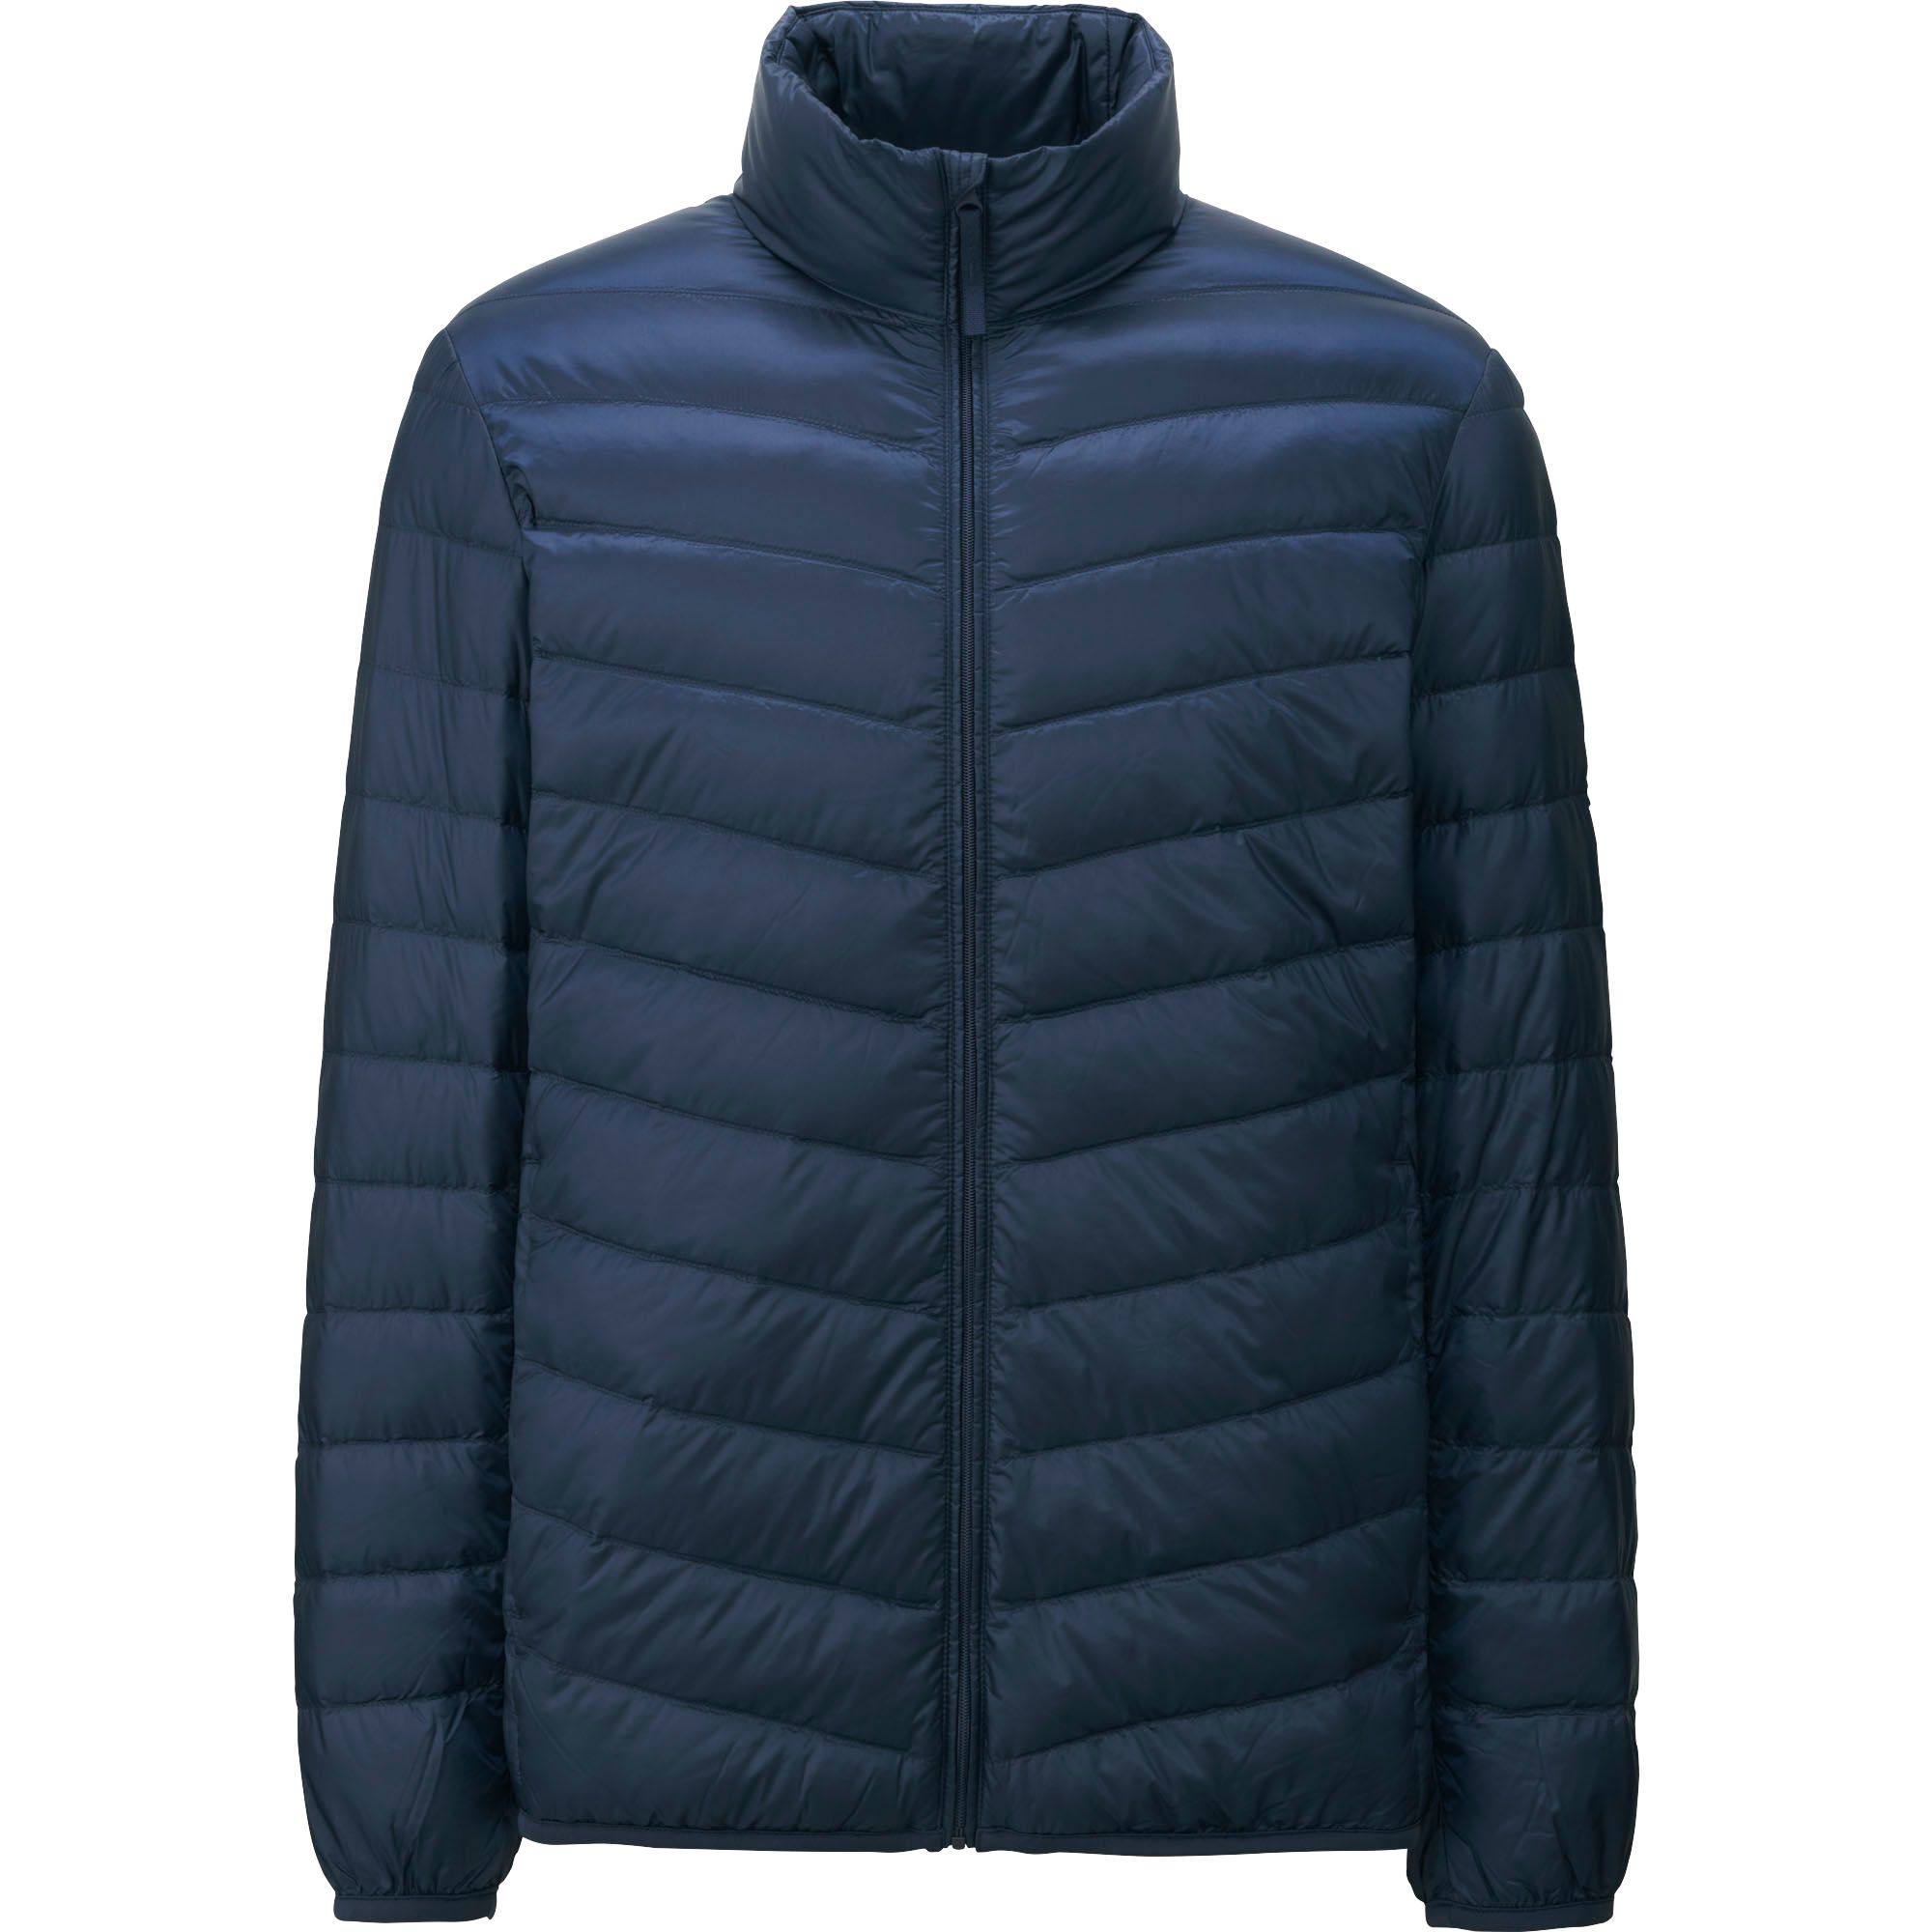 The Uniqlo Ultralight down jacket is, as the name implies, a very lightweight and compressible 'puffy' jacket that is stuffed with 90% real down. I have read that it ranks somewhere on a scale of – fill power which is quite warm.